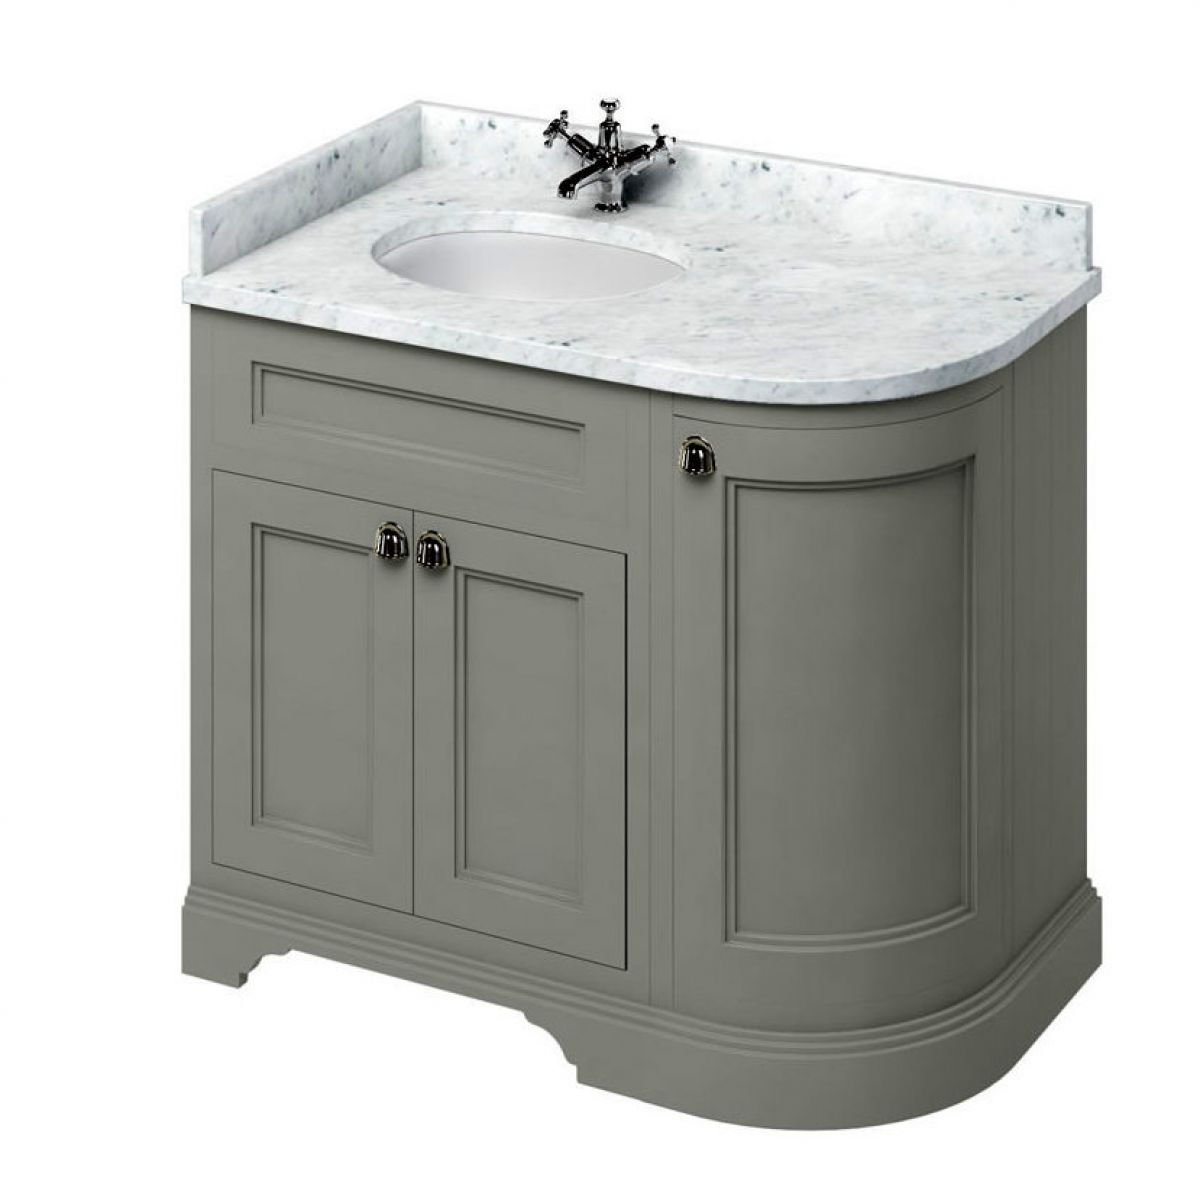 Curved vanity unit bathroom